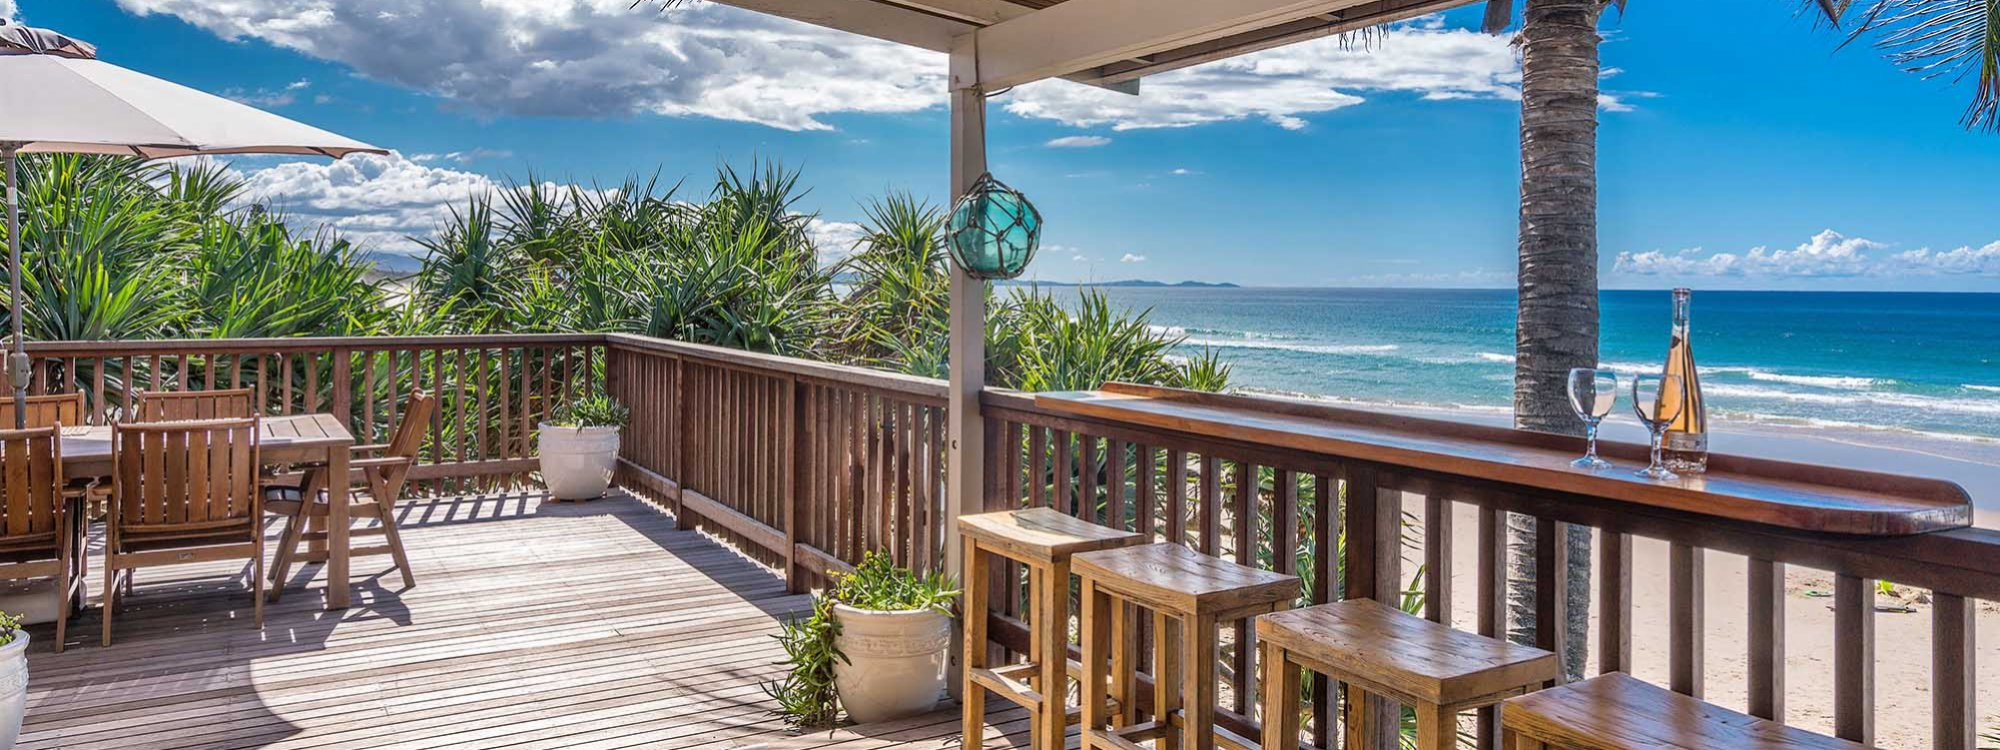 Moonstruck - Byron Bay - Upstairs balcony